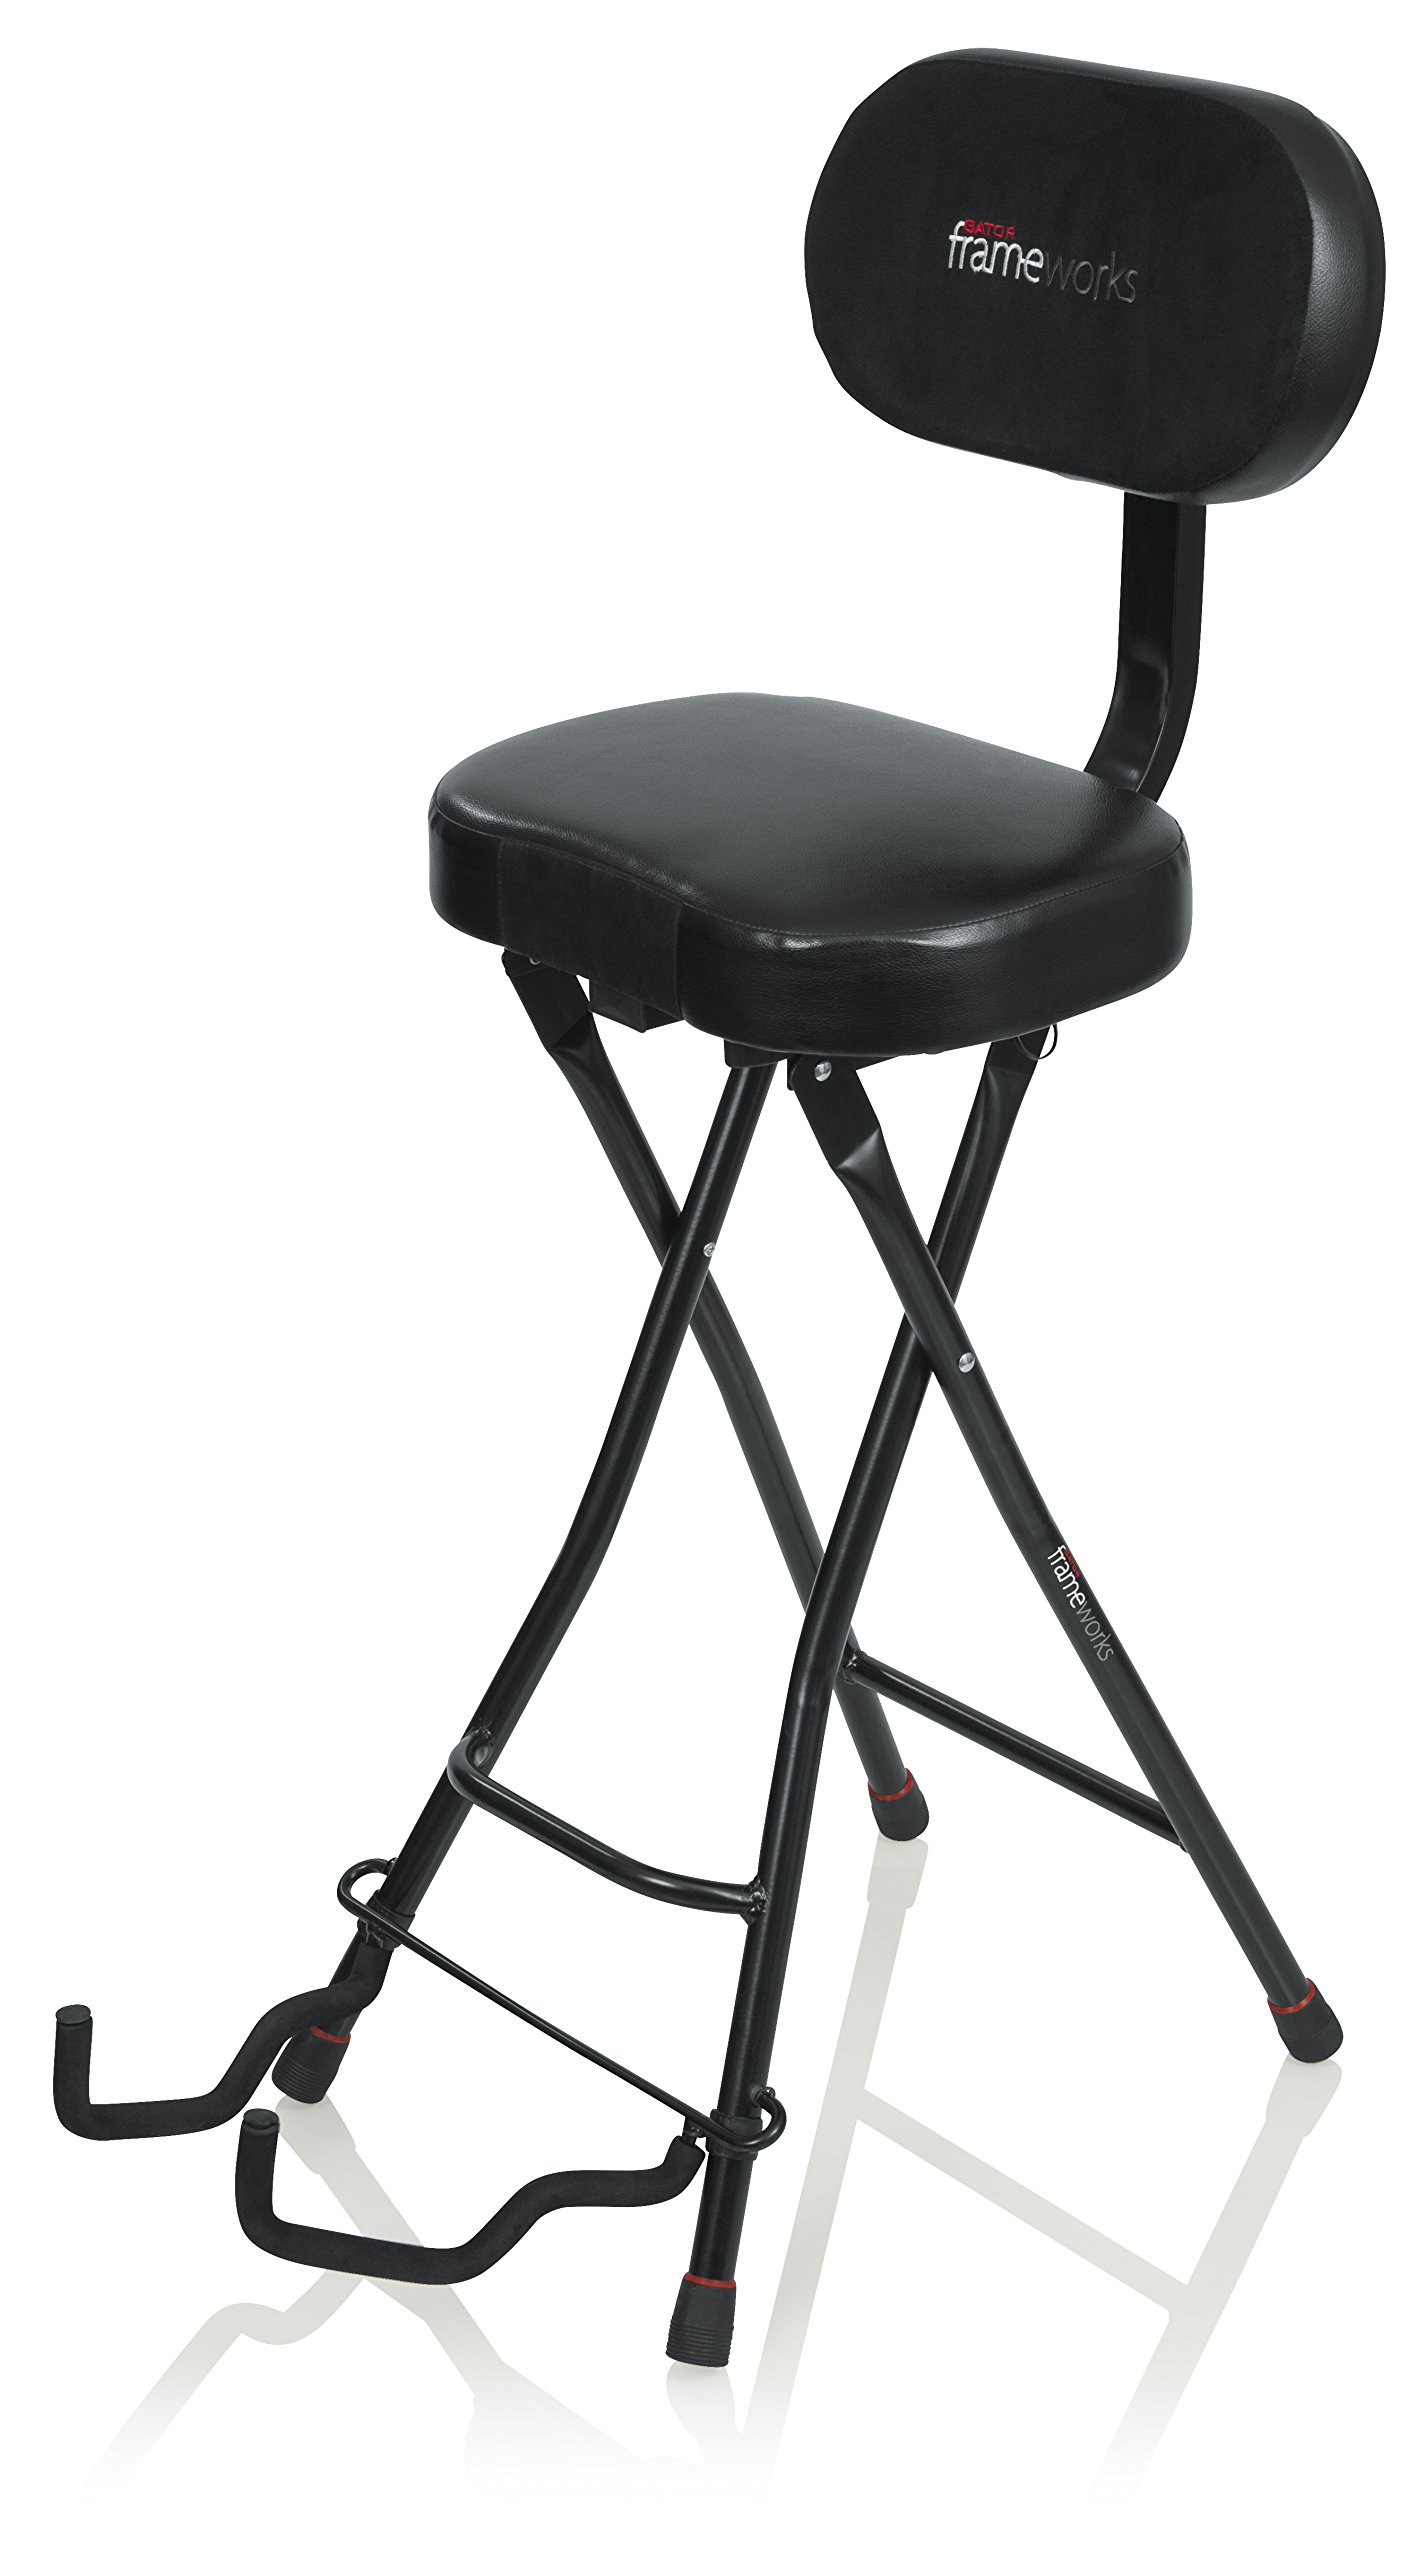 Gator Frameworks Guitar Seat with Padded Cushion, Ergonomic Backrest and Fold Out Guitar Stand; Holds both Acoustic and Electric Guitars (GFW-GTR-SEAT)